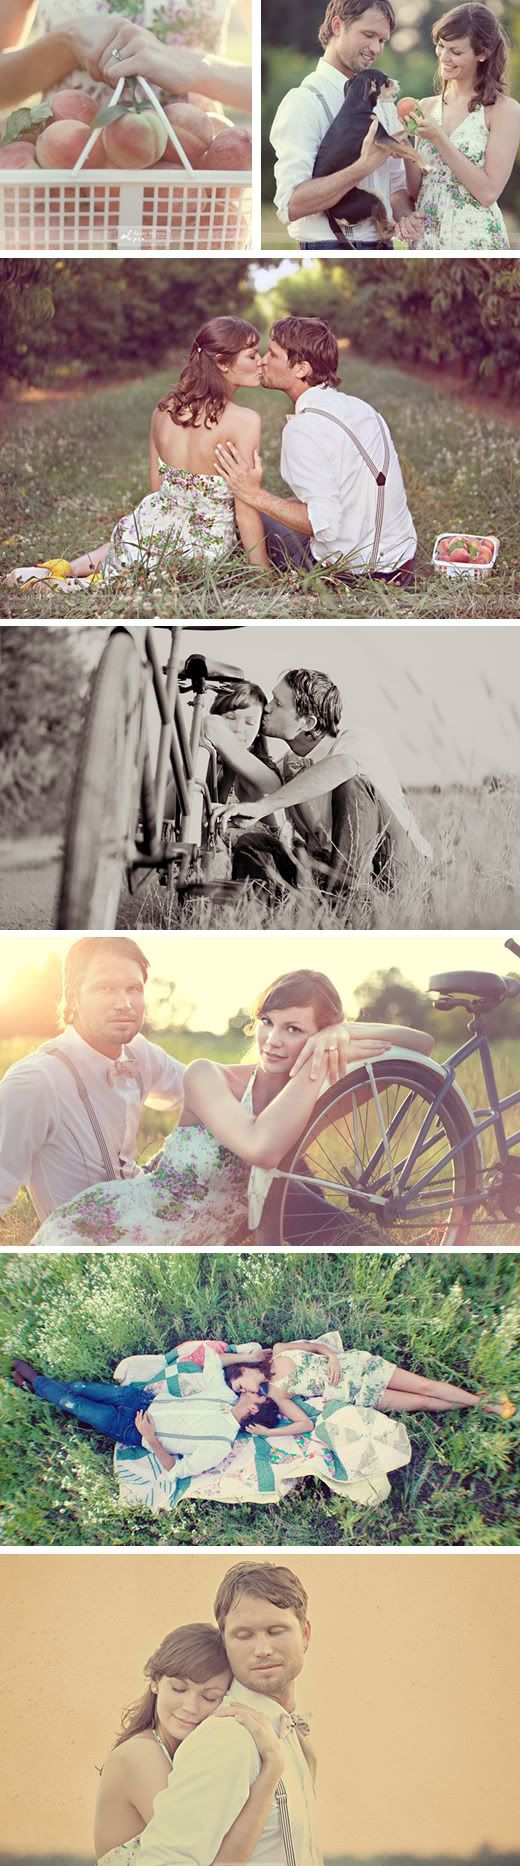 Vintage Engagement Photo Shoot - I know of a peach orchard near here! Too perfect!